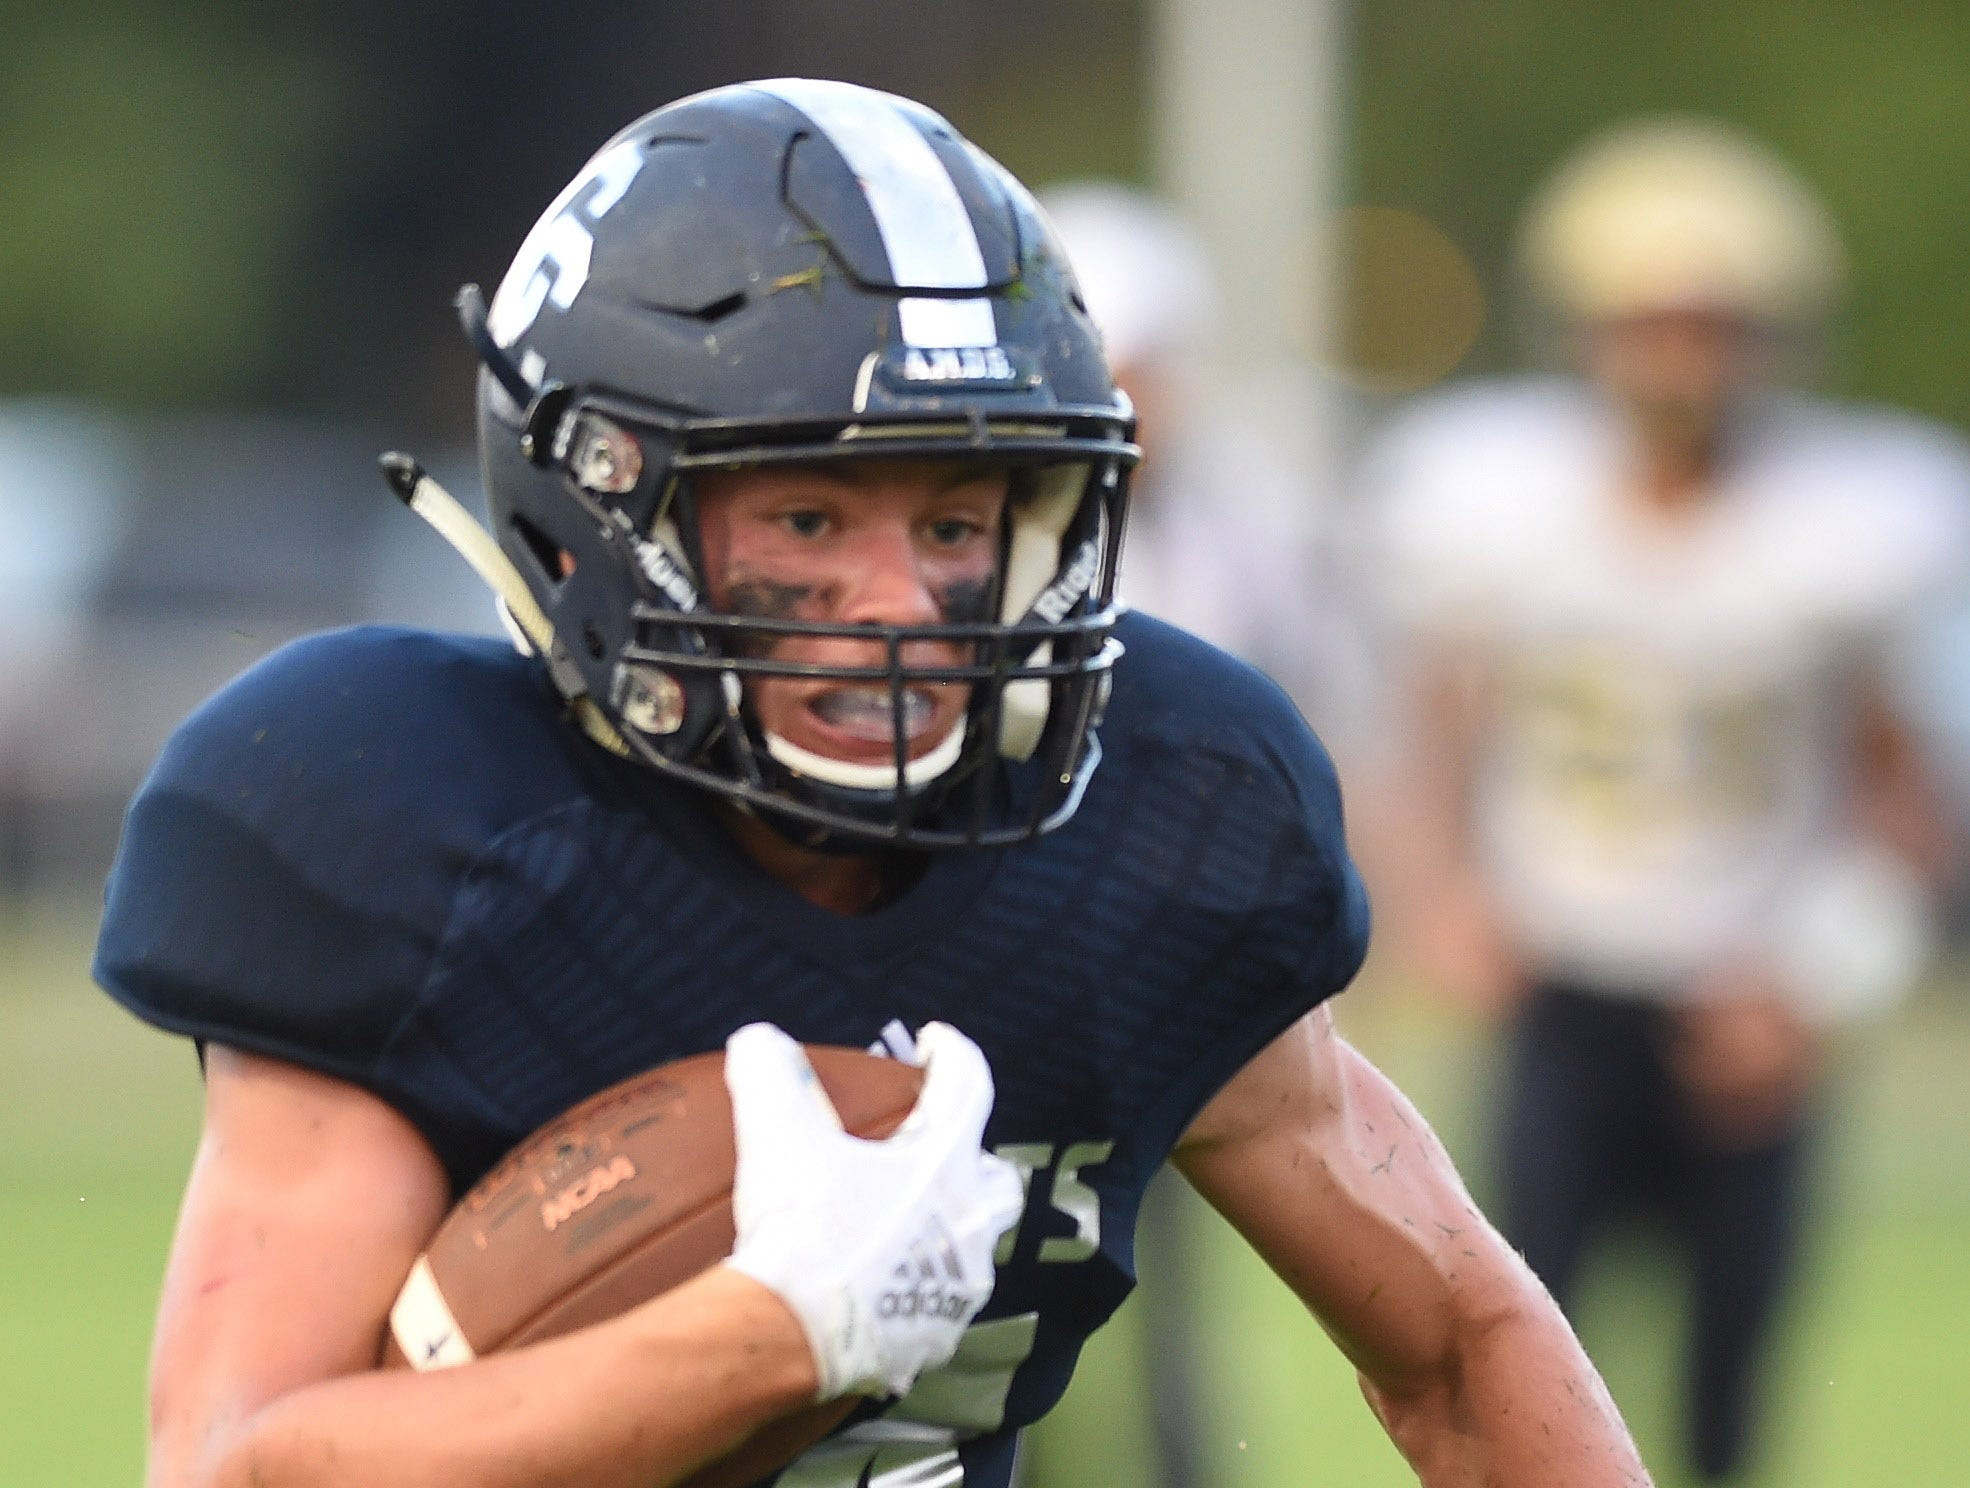 Central  Catholic running back Ky Schrader breaks into the open.